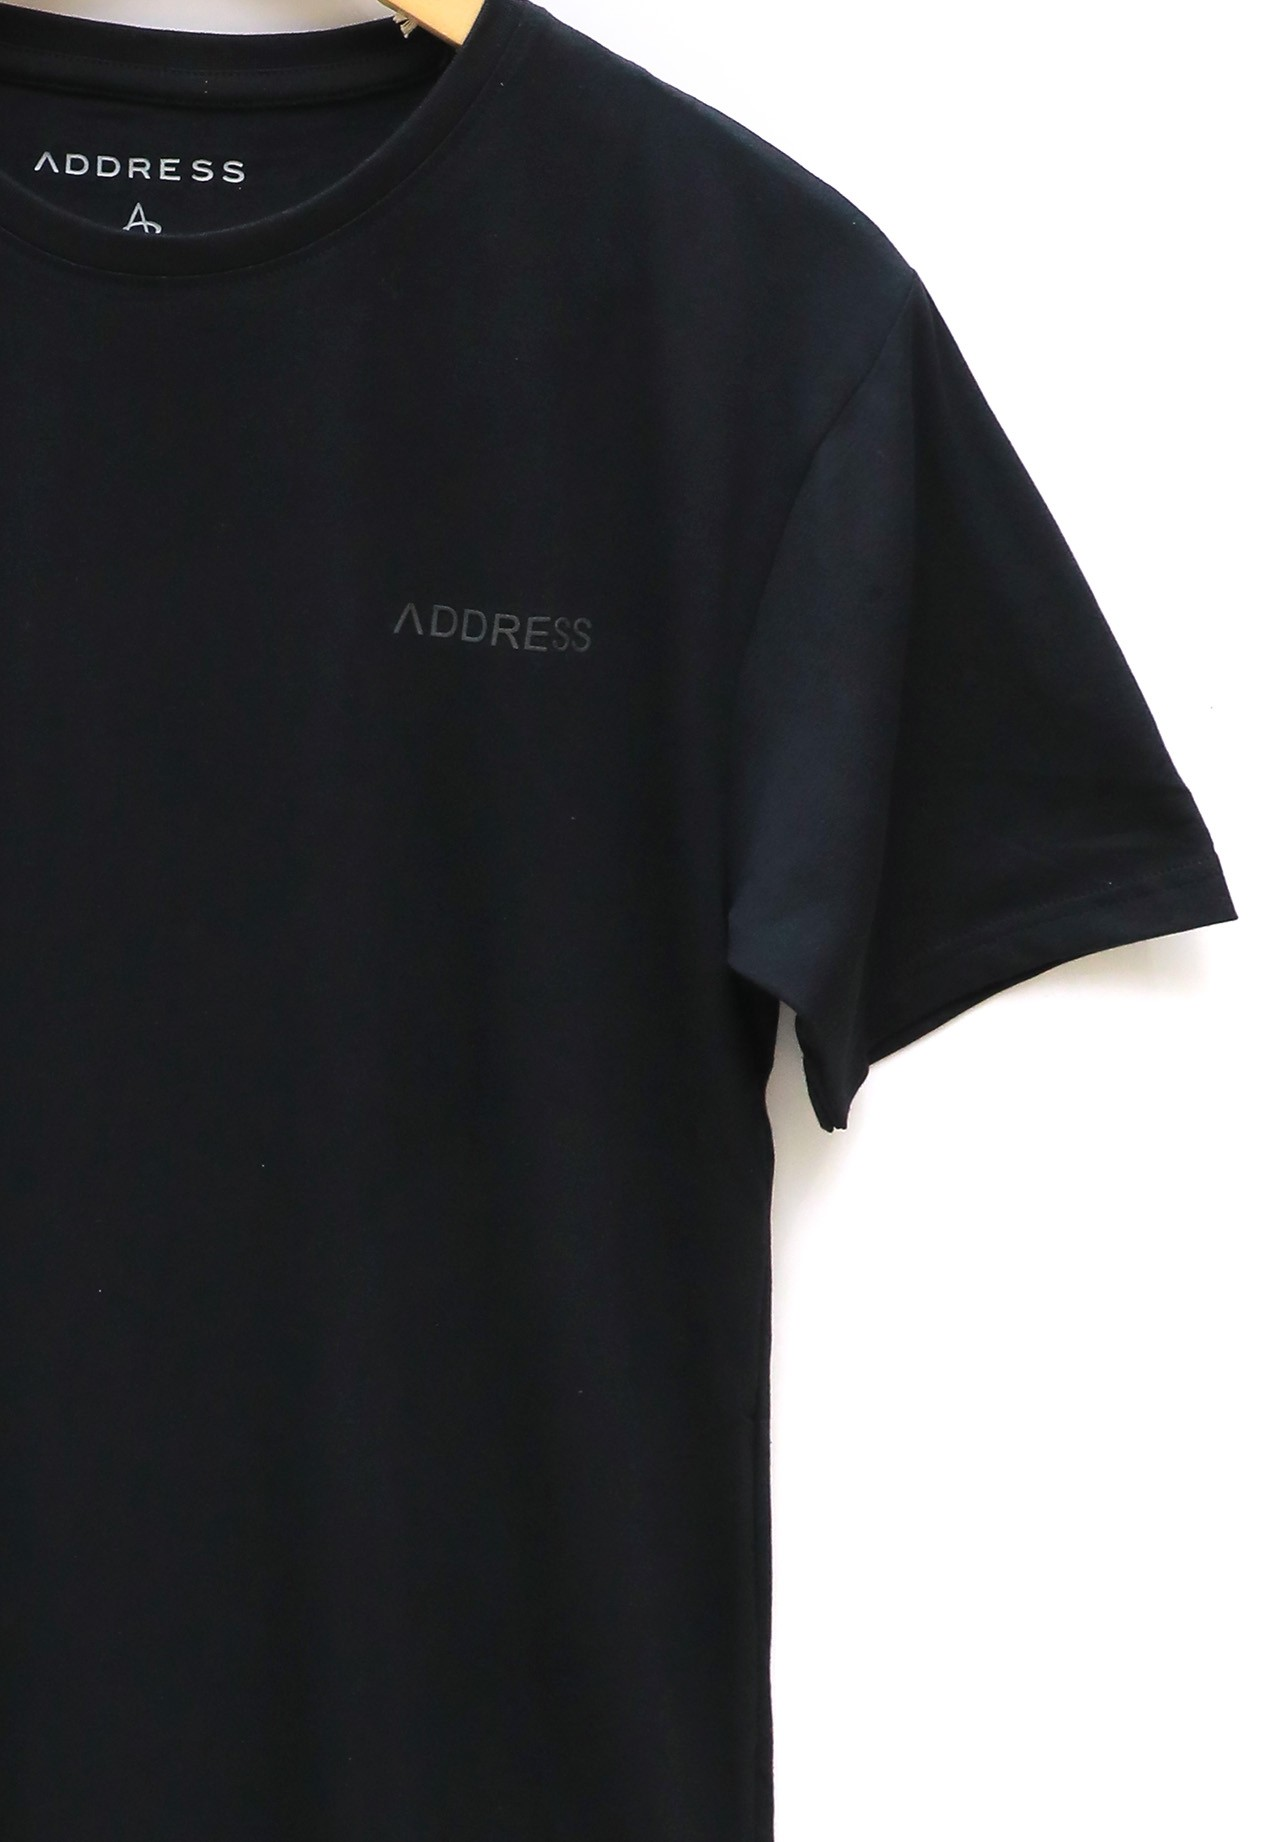 Address Black Plain T-Shirt Round Neck, XXL